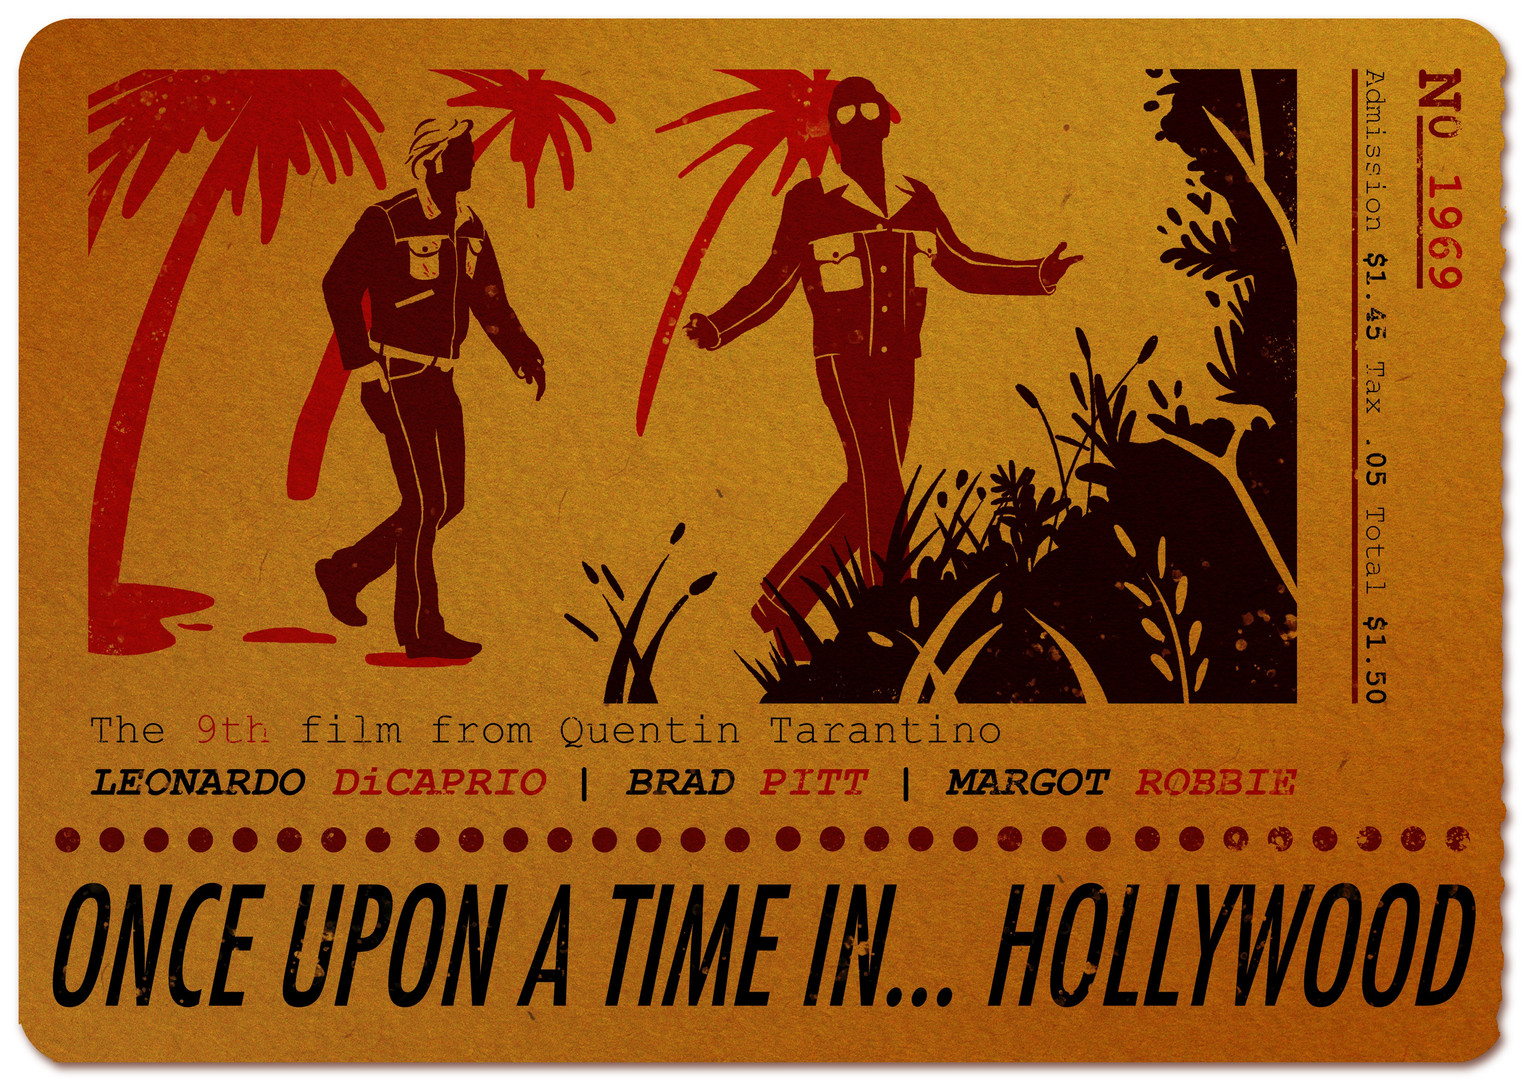 Once Upon A Time in Hollywood - Movie Ticket Poster